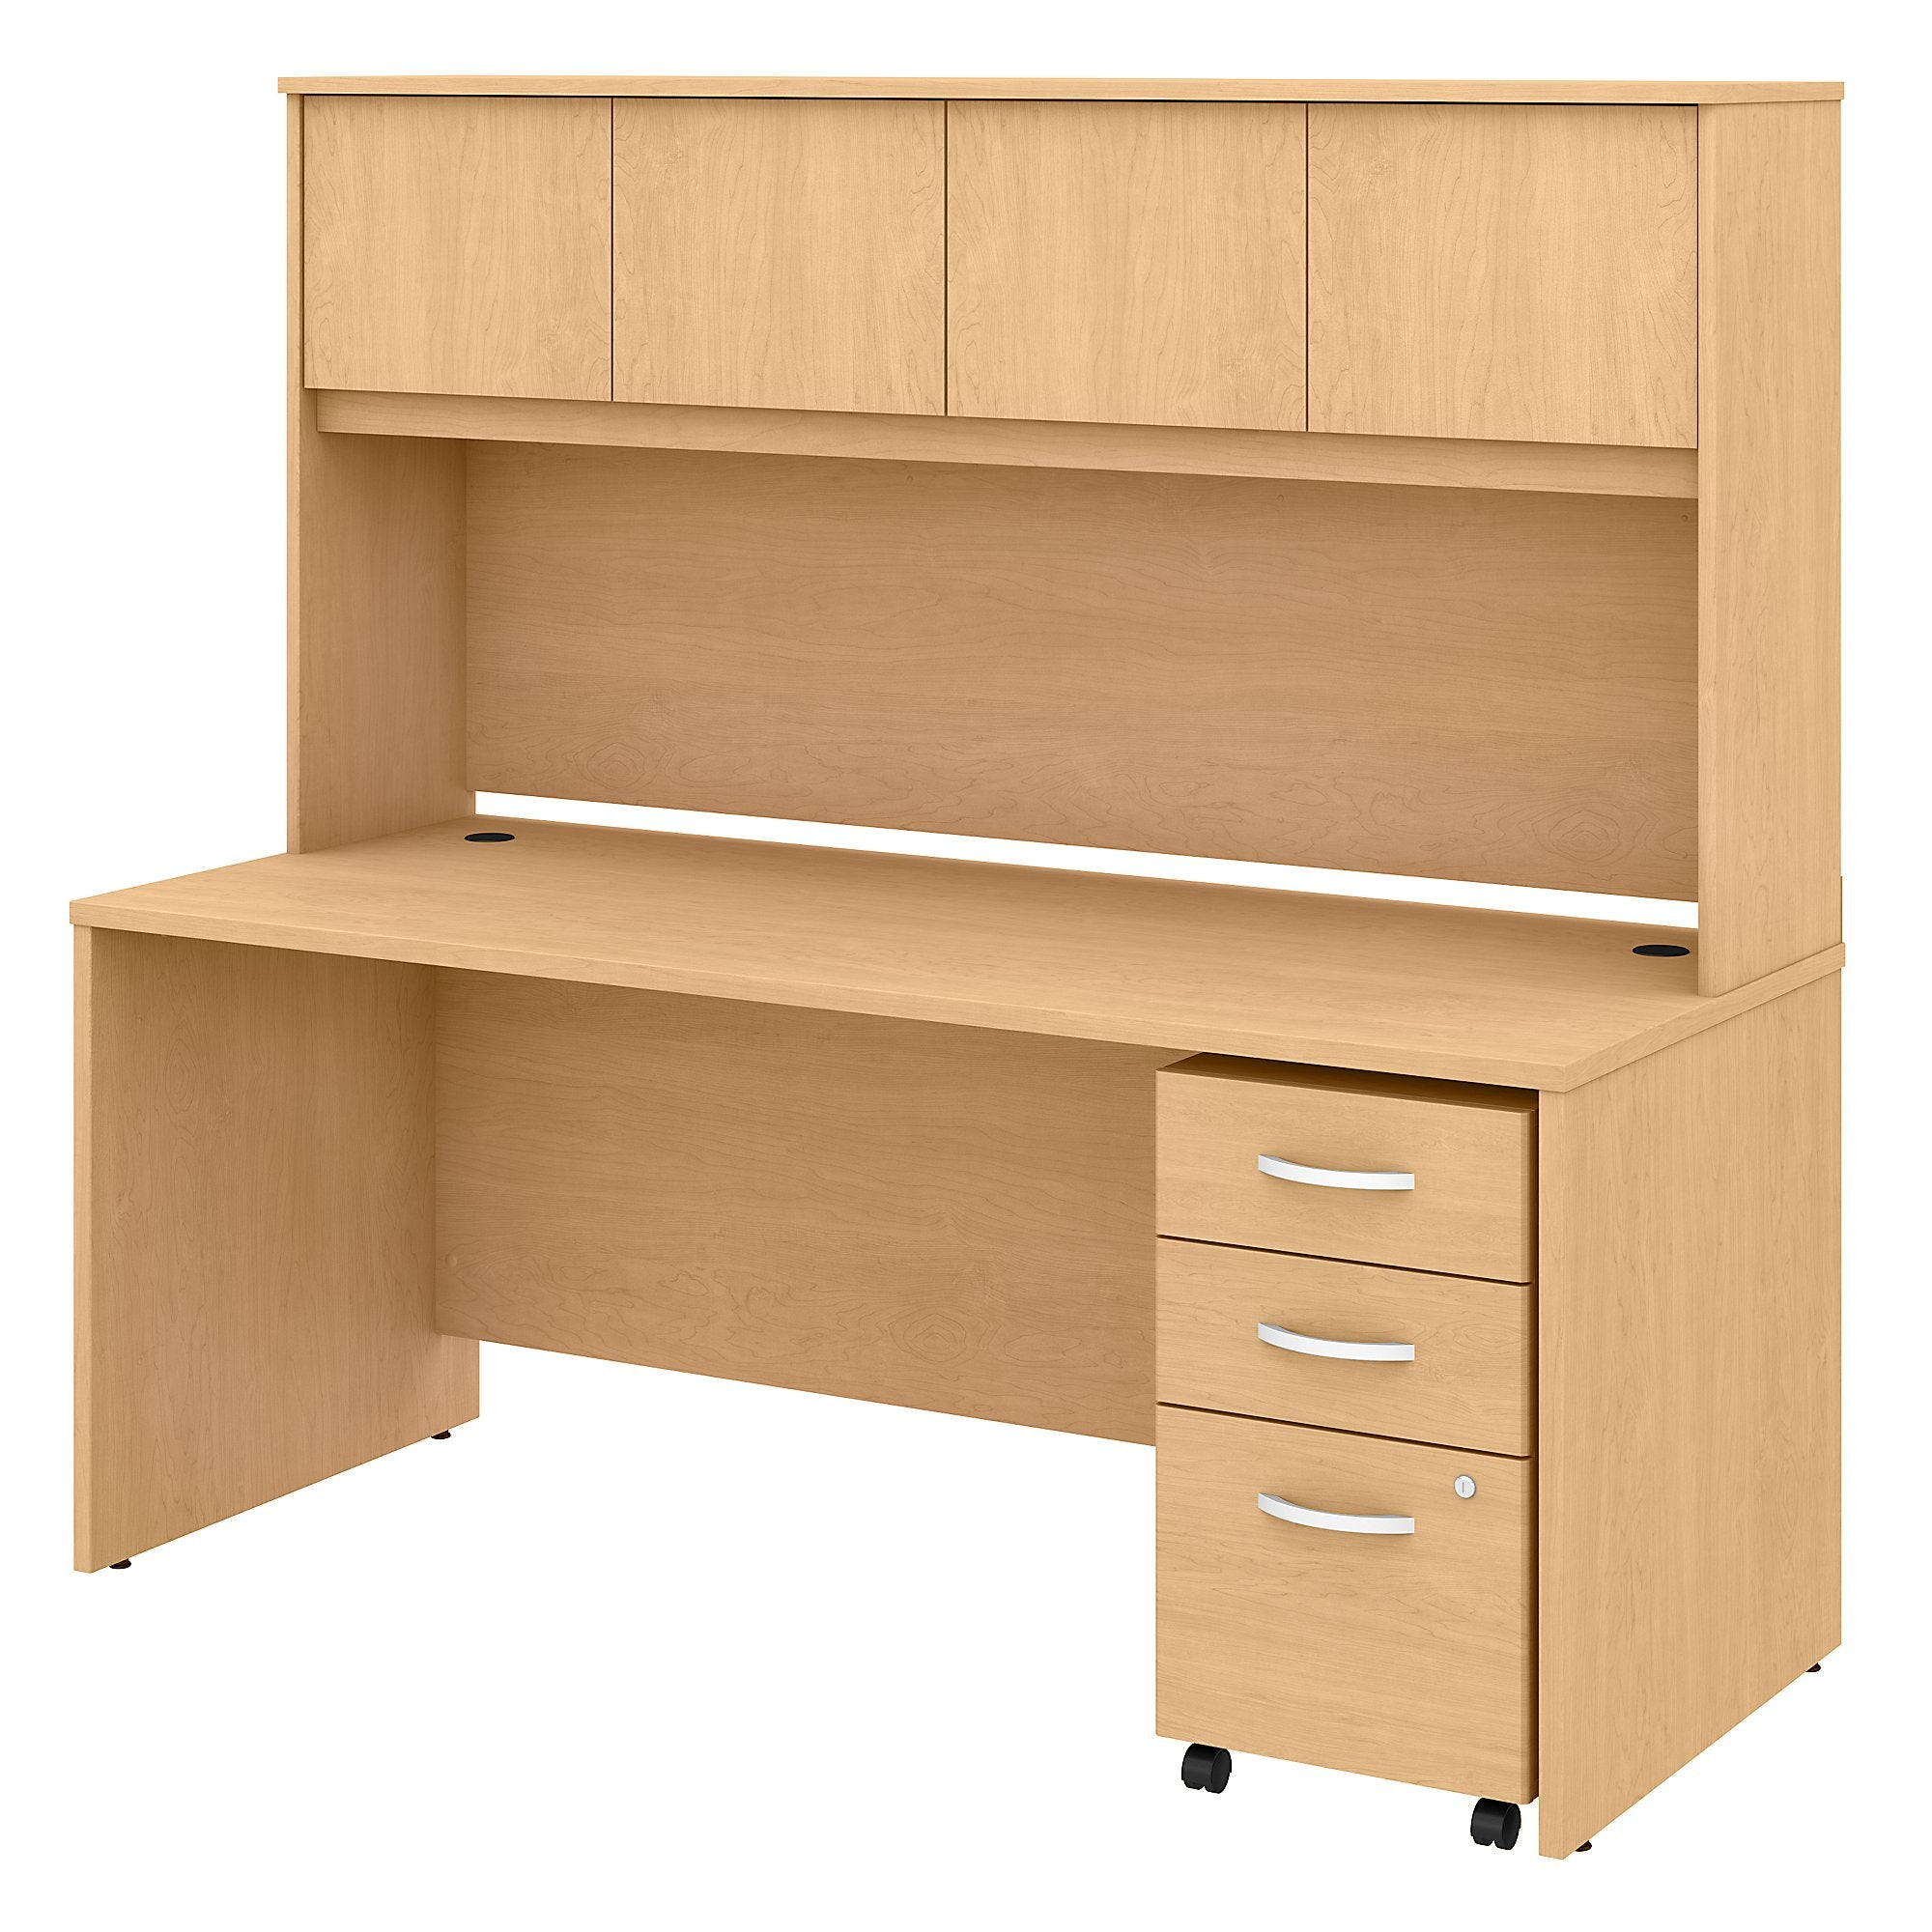 Studio C 72W x 30D Office Desk with Hutch & Mobile File Cabinet